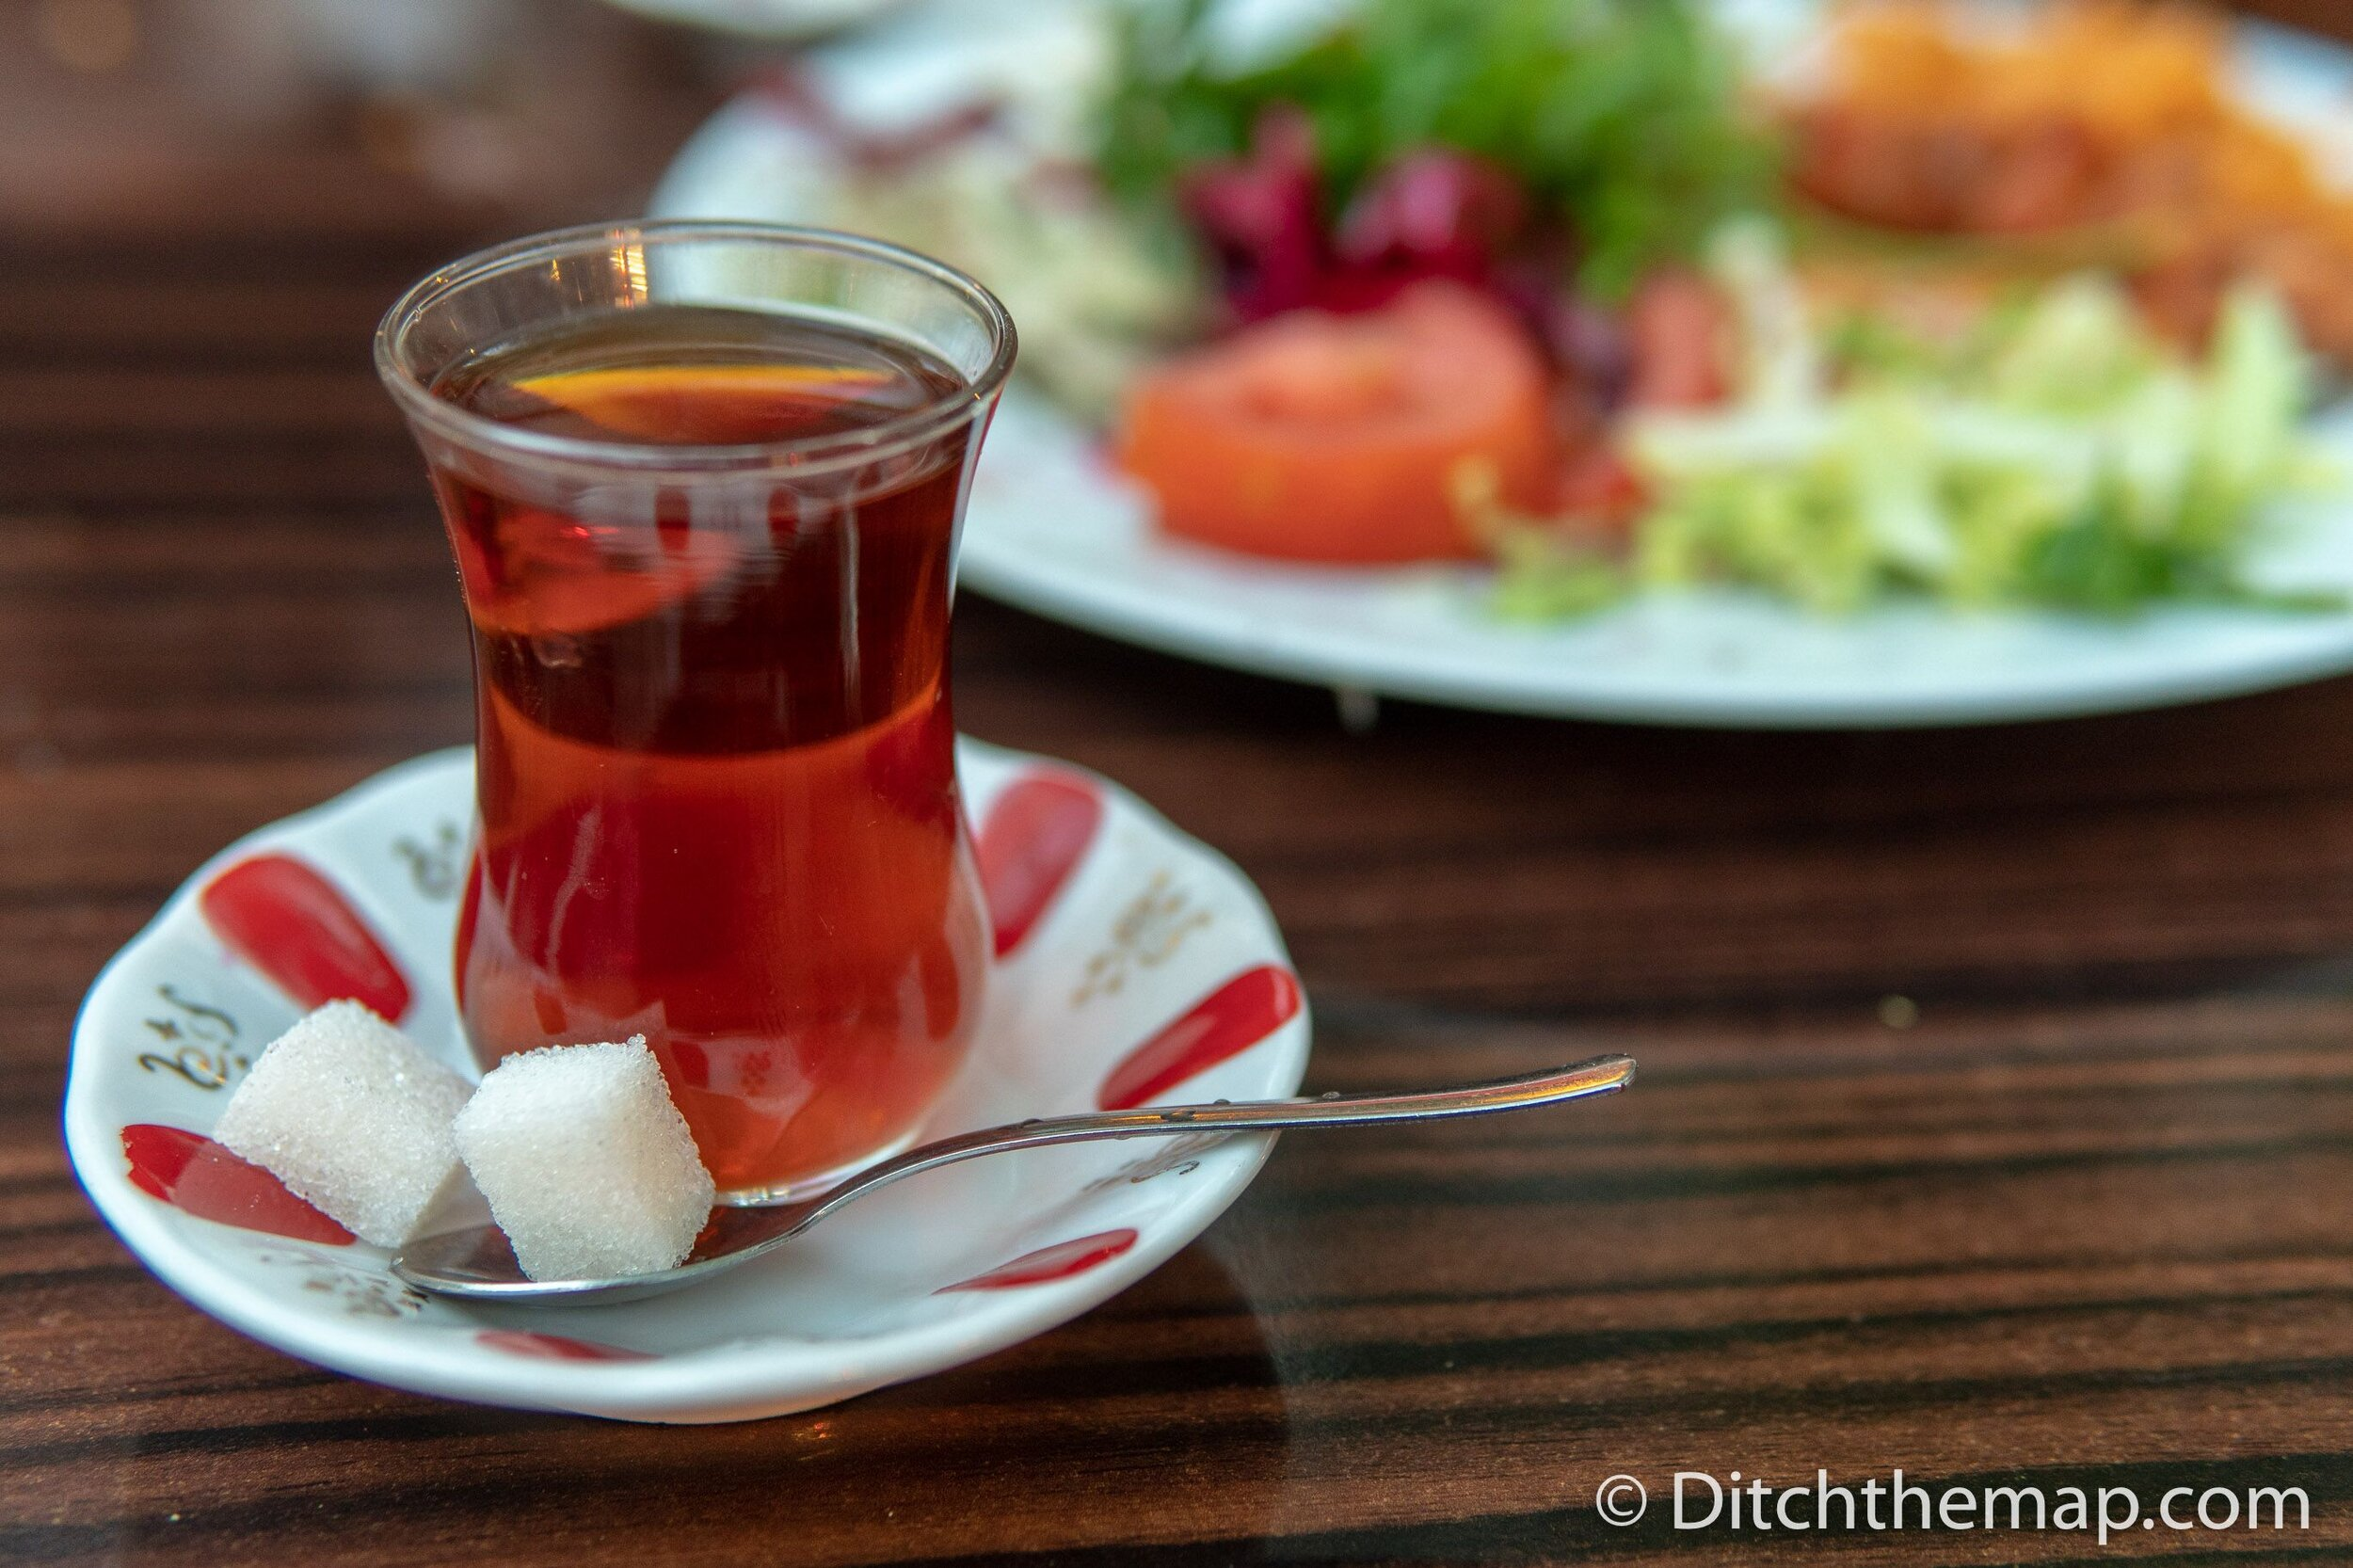 A cup of çay, or Turkish tea, is a symbol of hospitality